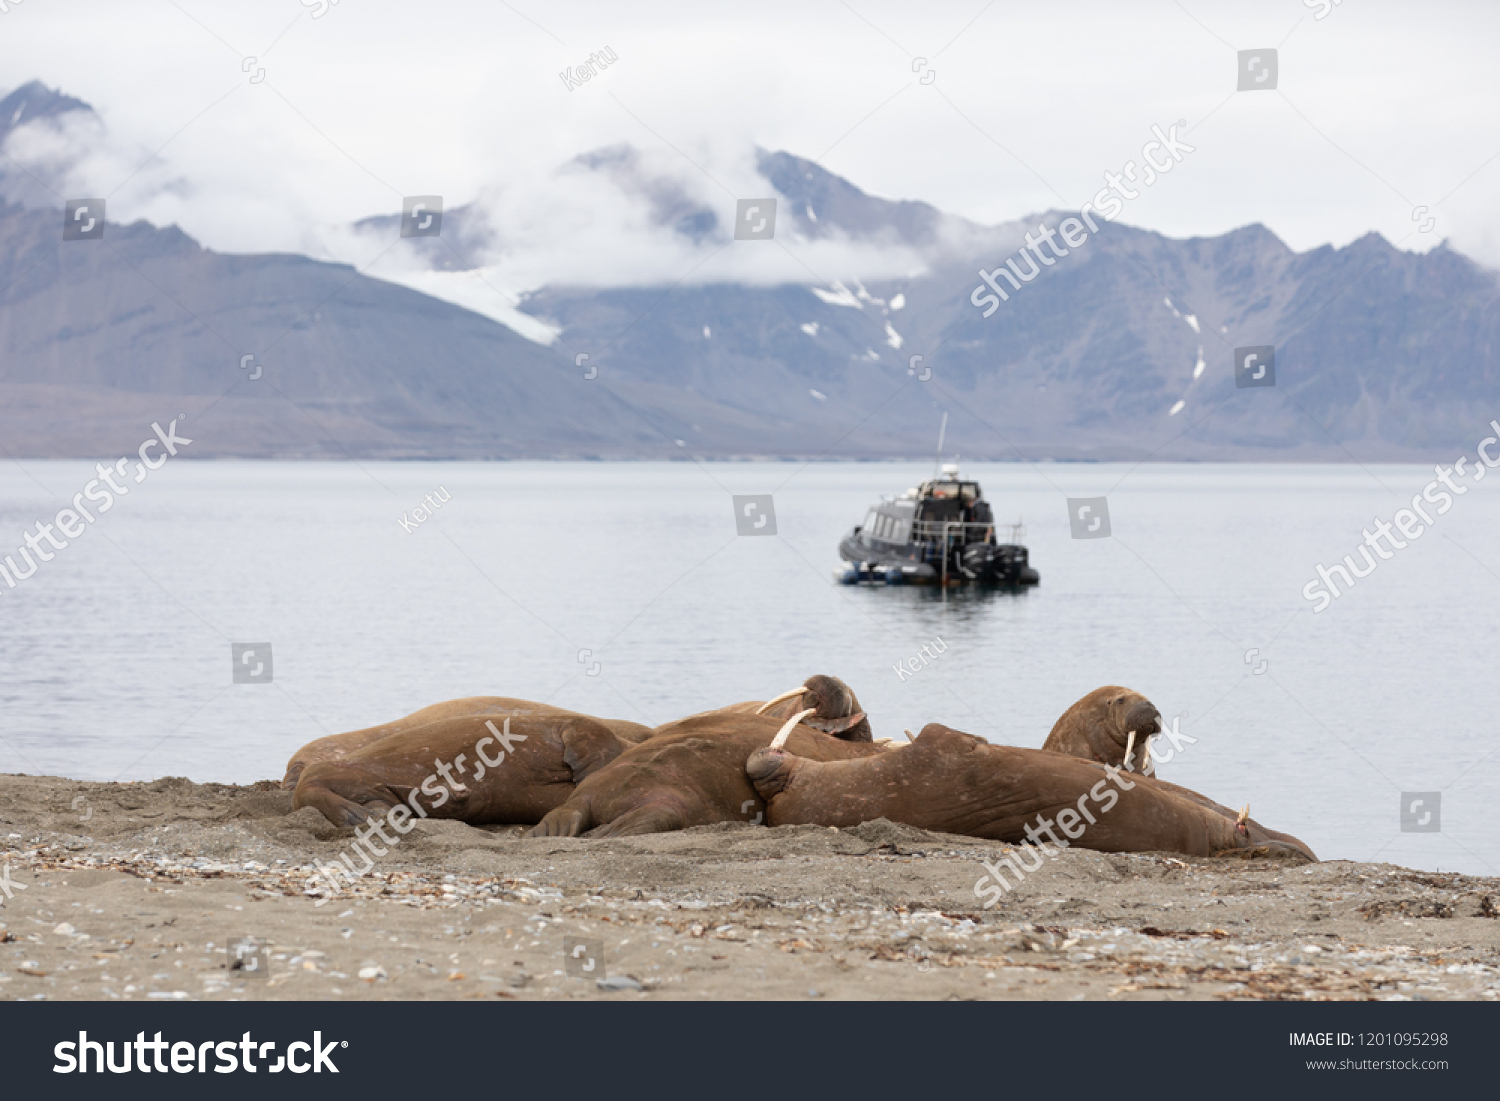 A black tourist boat observing a herd of male walruses suntanning on the beach. Longyearbyen, Svalbard. #1201095298